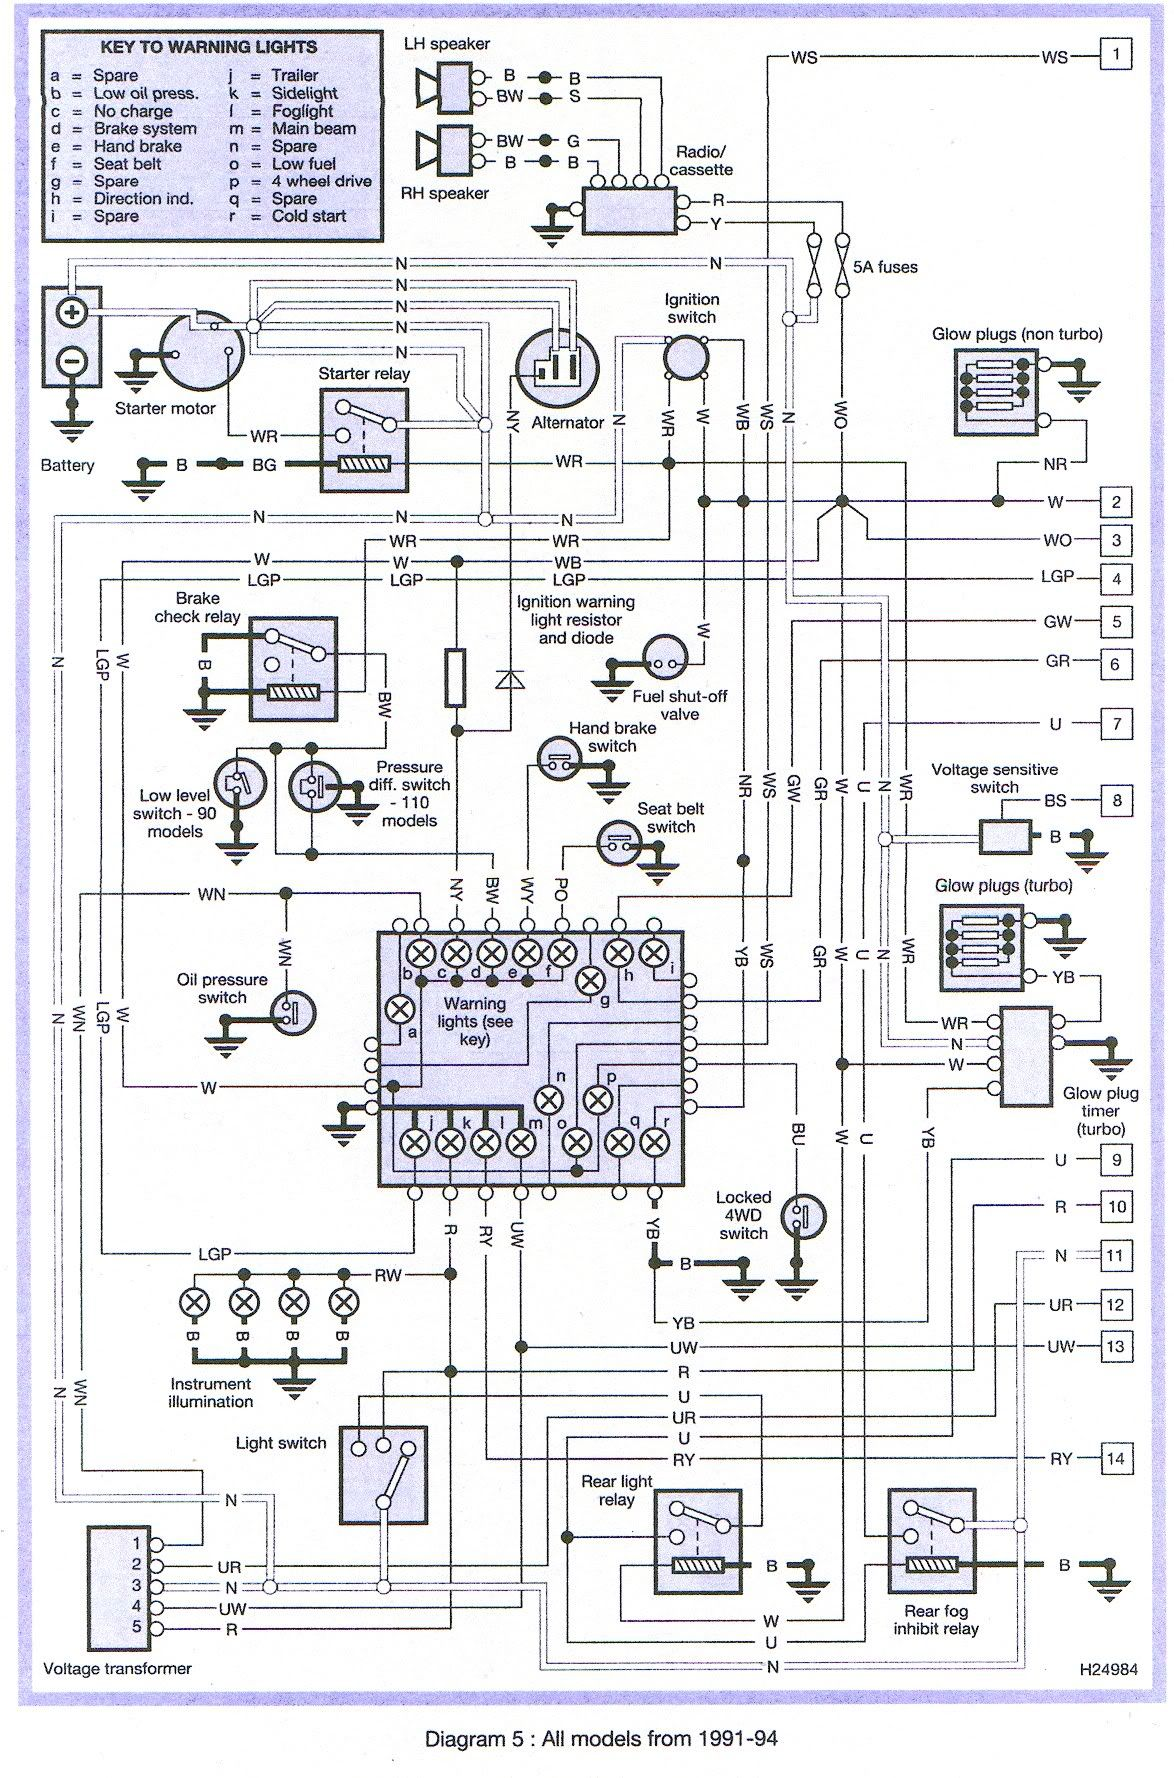 medium resolution of jeep patriot 2008 fuse box diagram